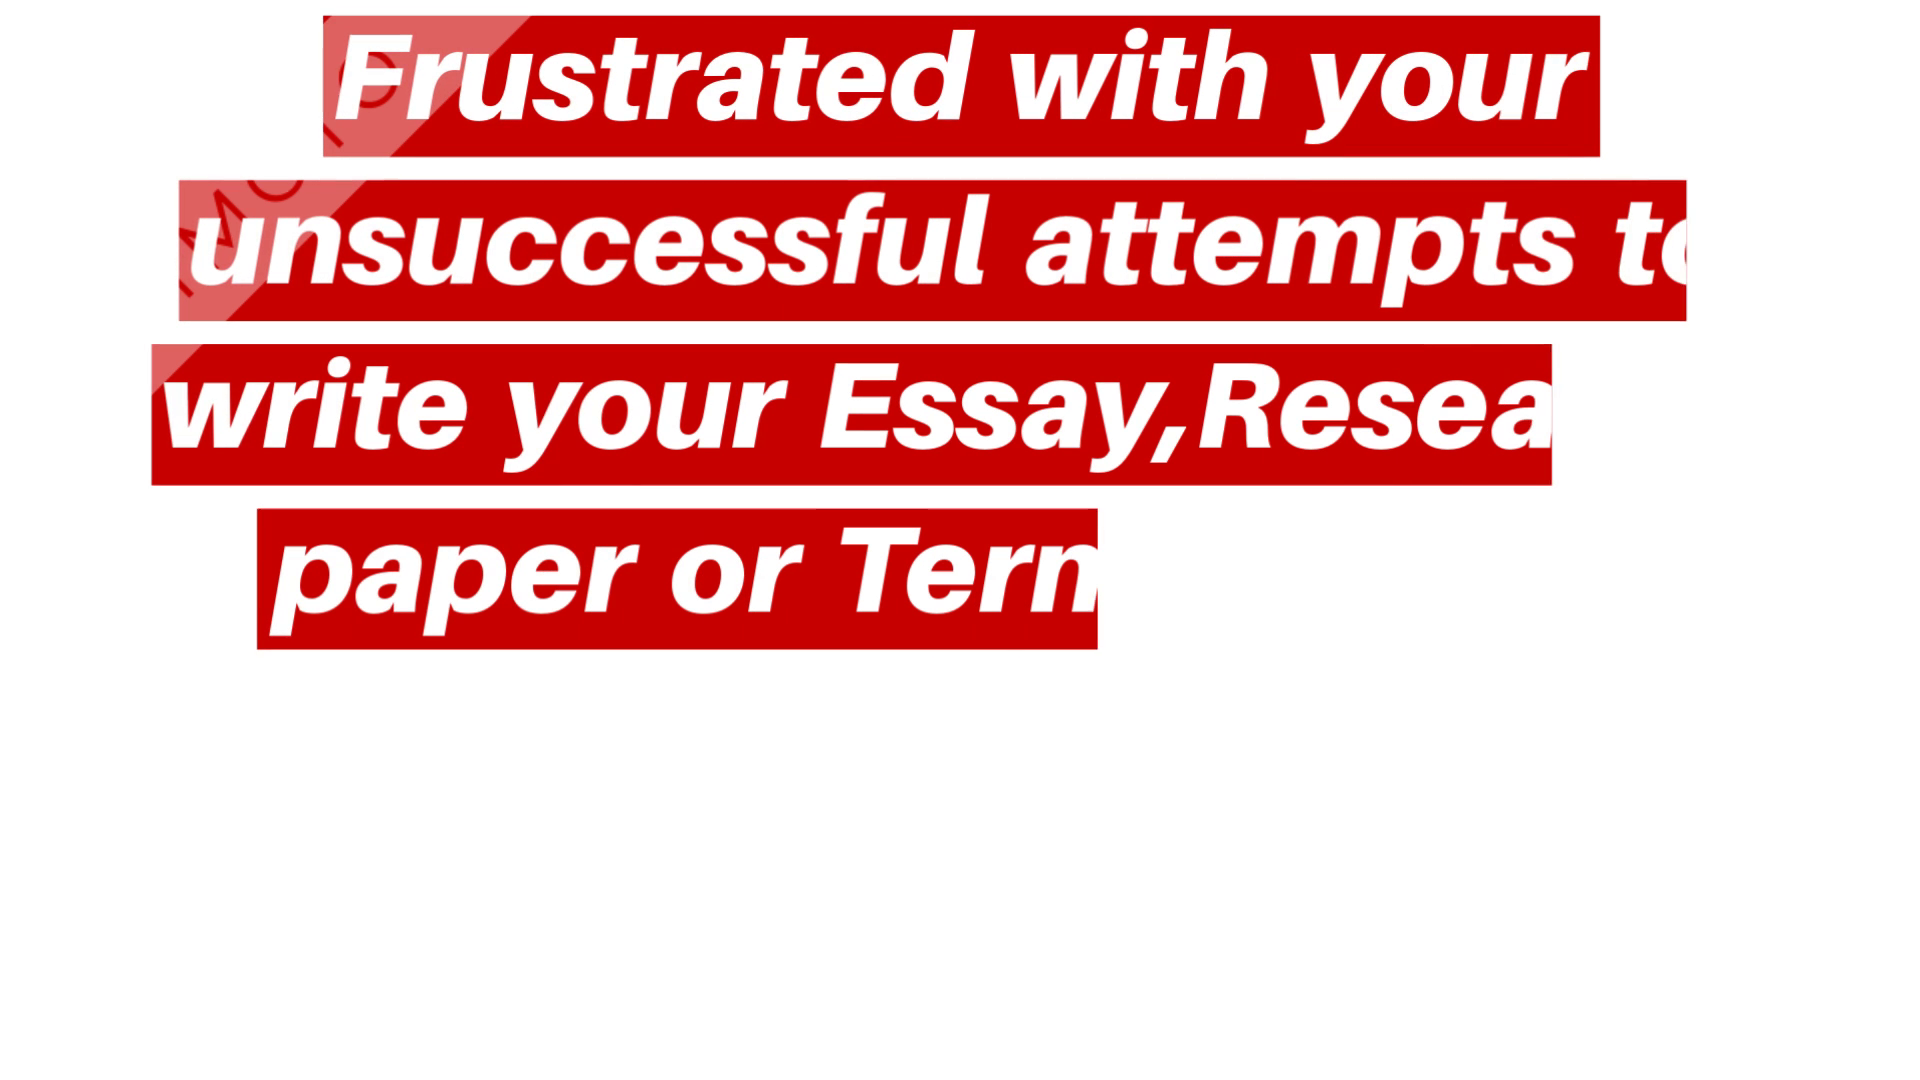 Best term paper writing service helps you to achieve your Dreams in academics